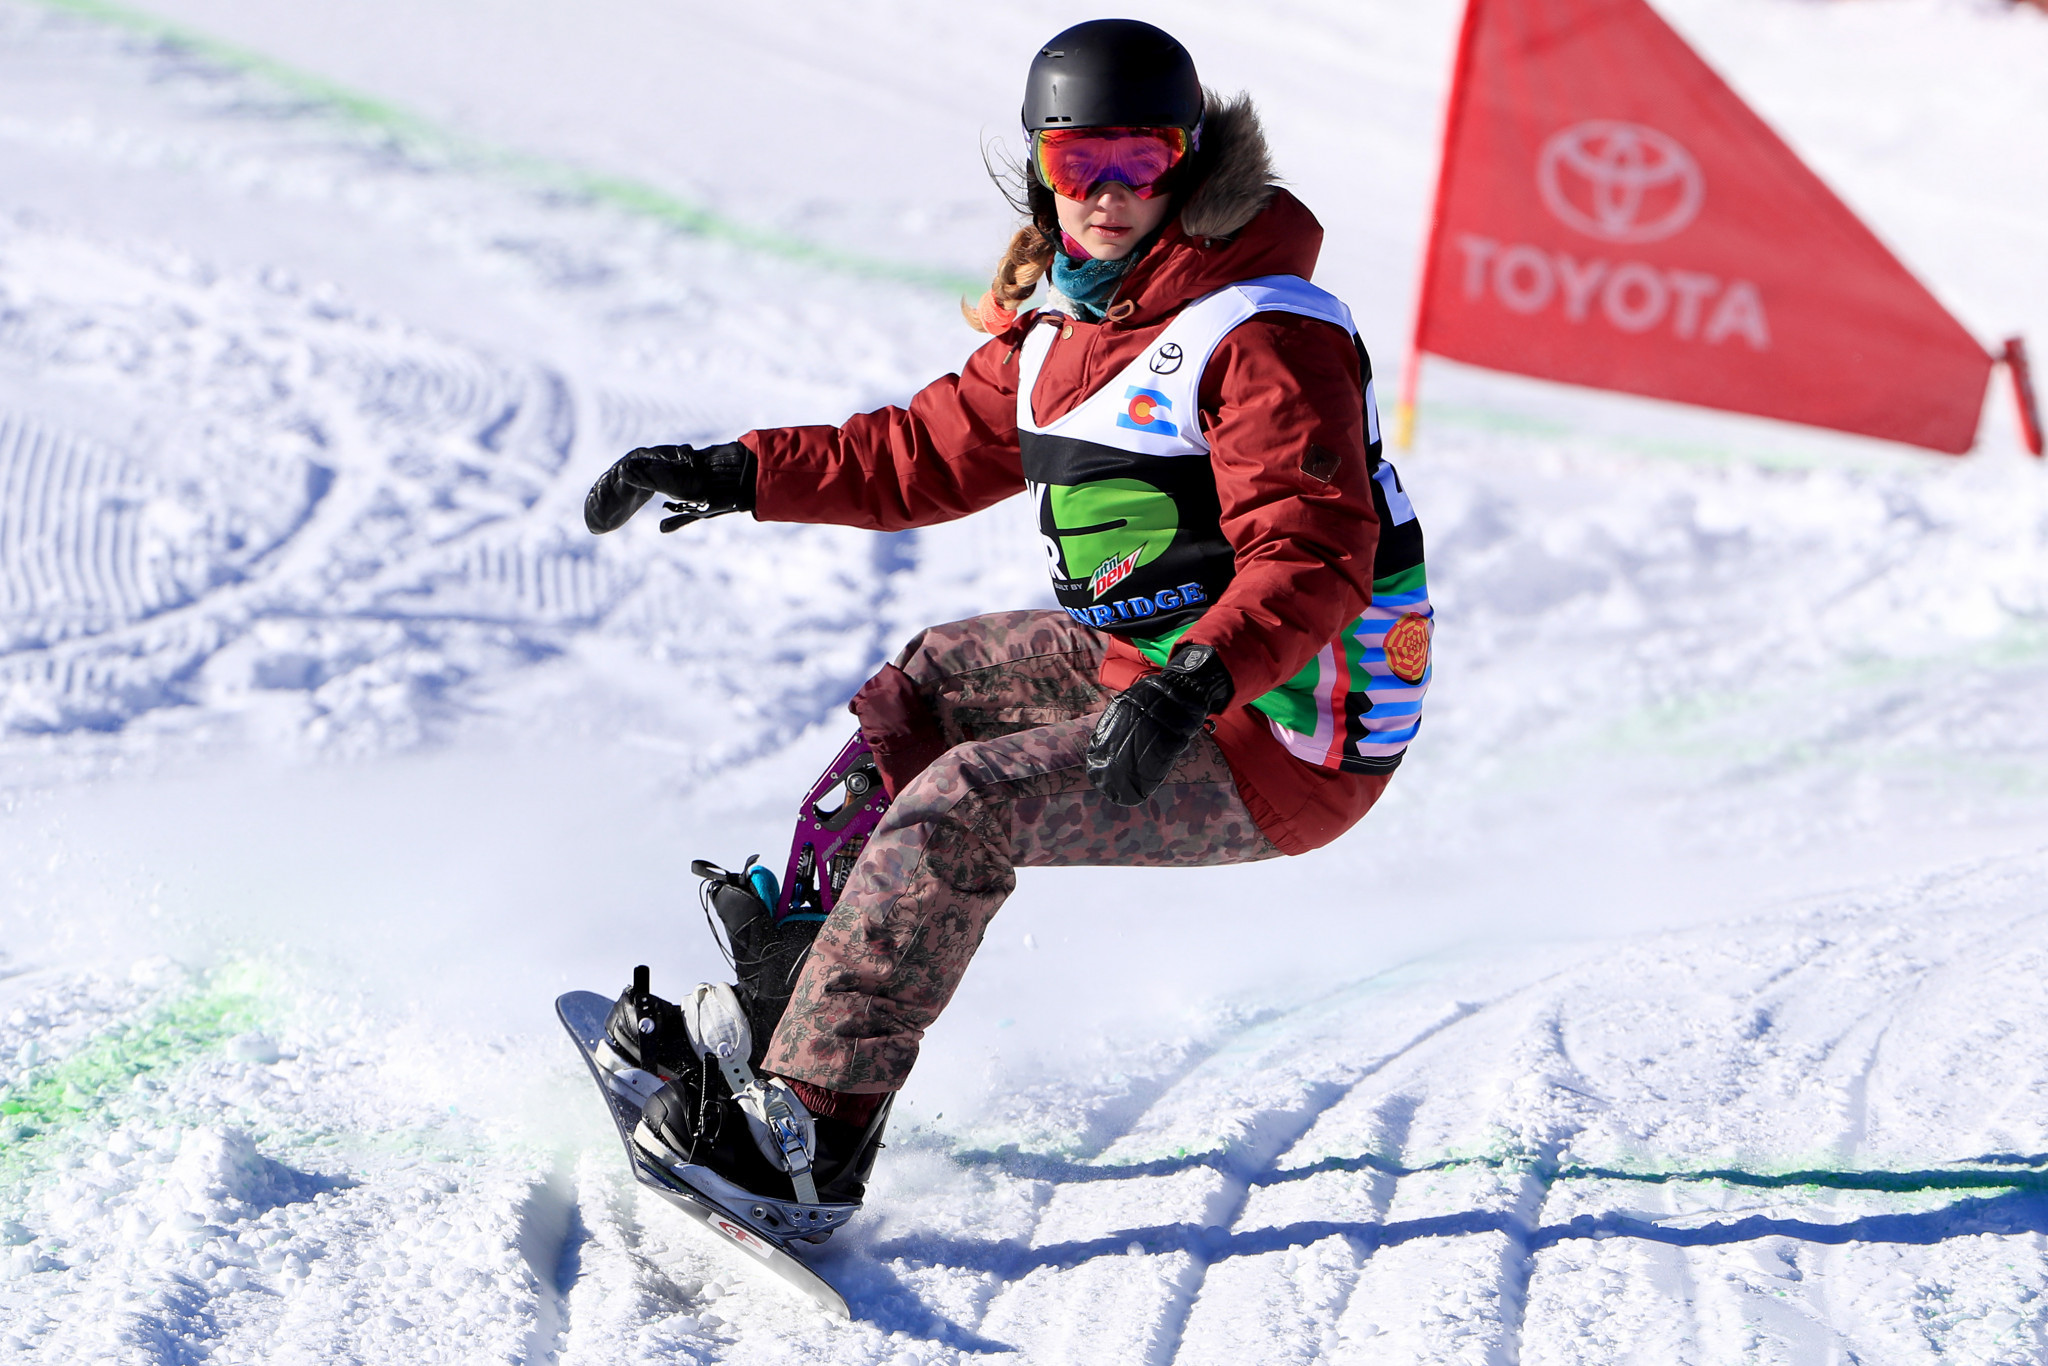 New snowboard cross format and return of Montaggioni to feature at World Para Snowboard Championships